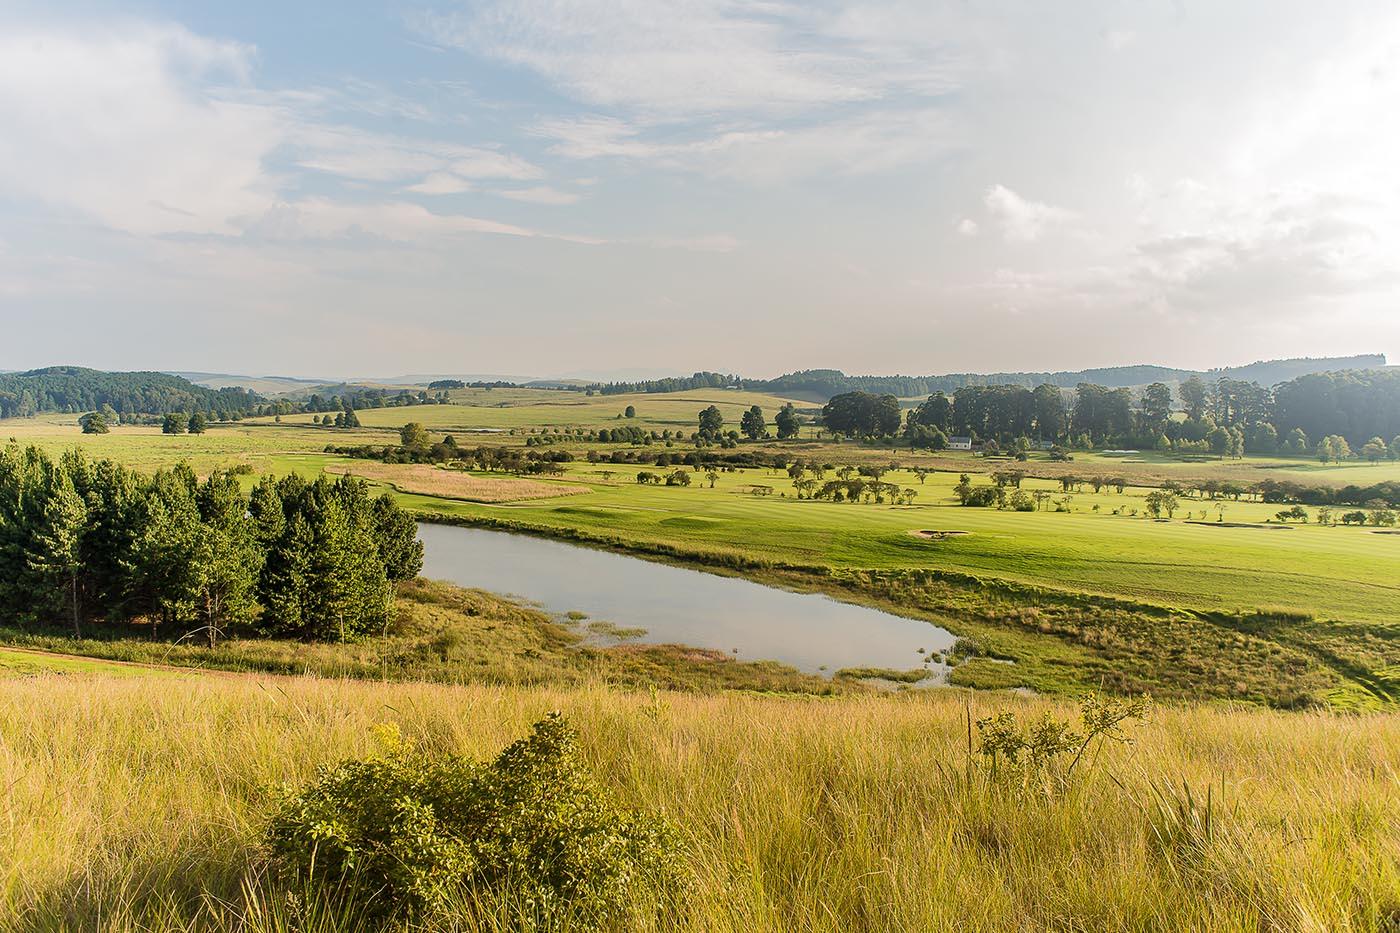 golf-gallery-gowrie-farm-conference-venue-golf-estate-course-midlands